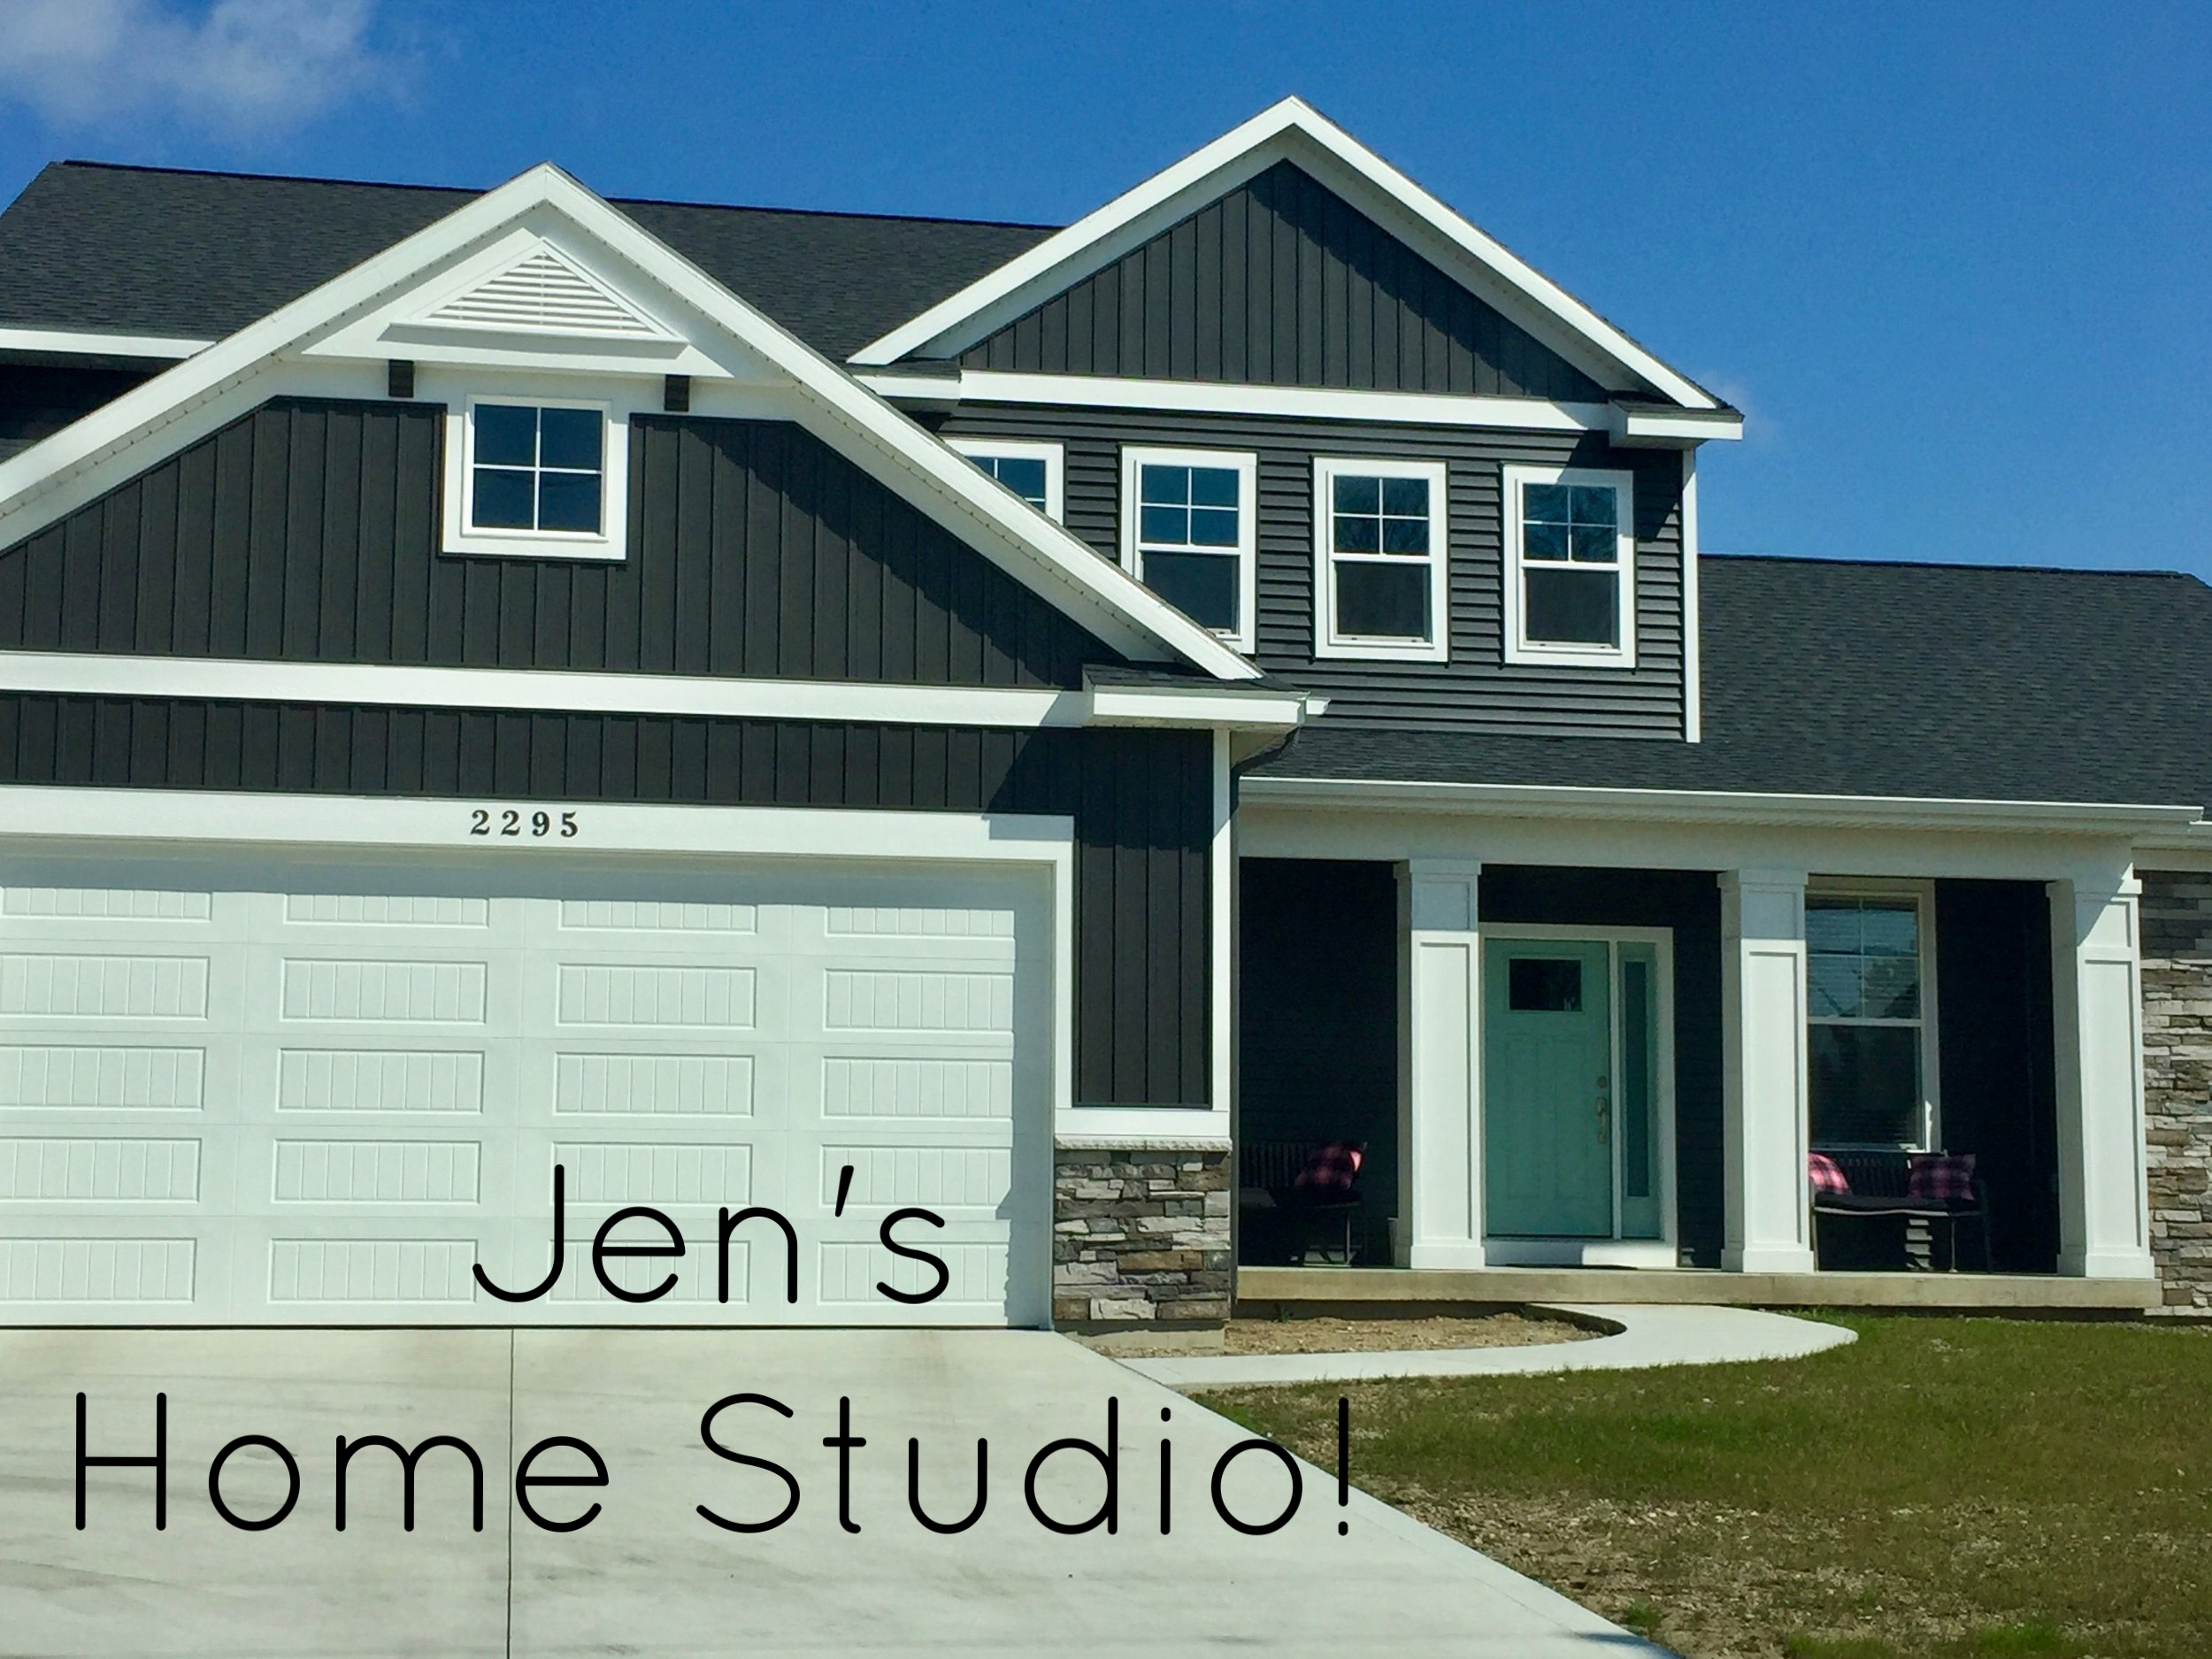 Jen's home studio is located at: 2295 VanBuren Hudsonville, MI 49426